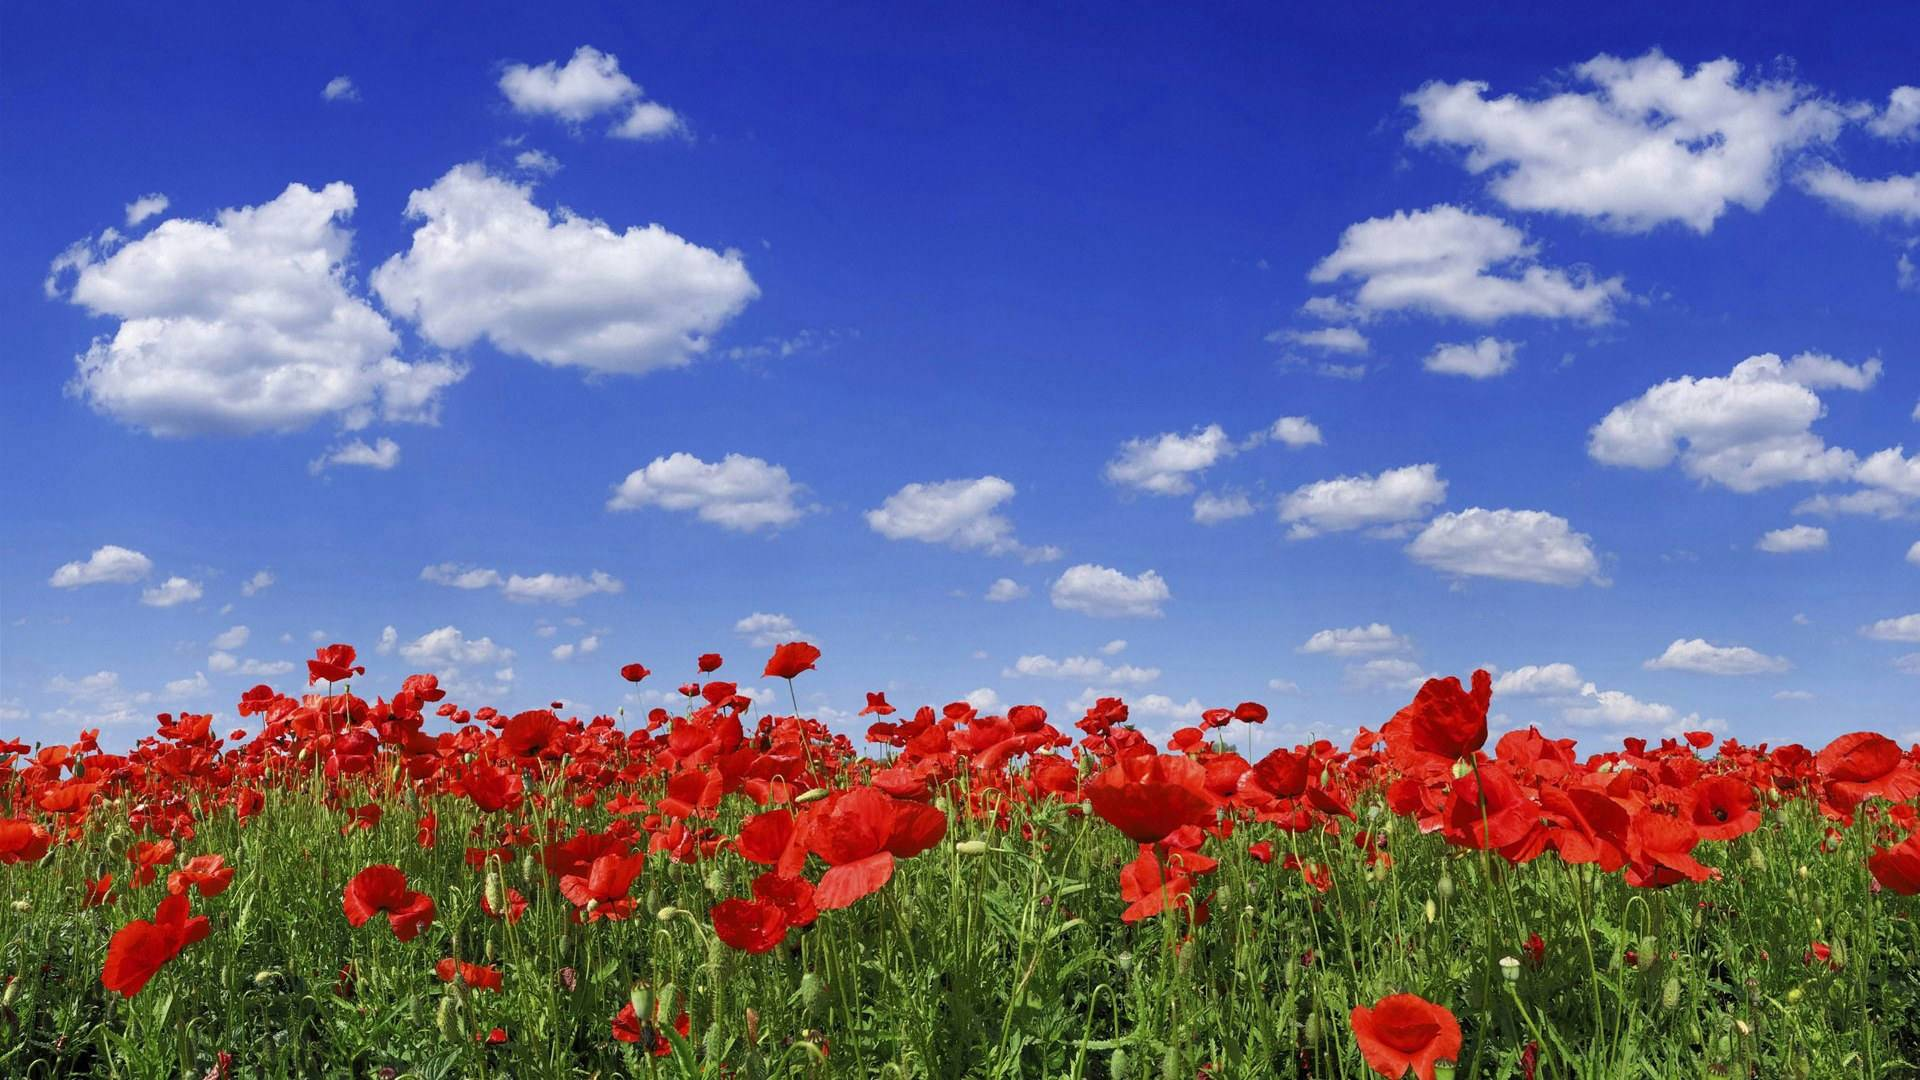 flowers under blue sky wallpaper